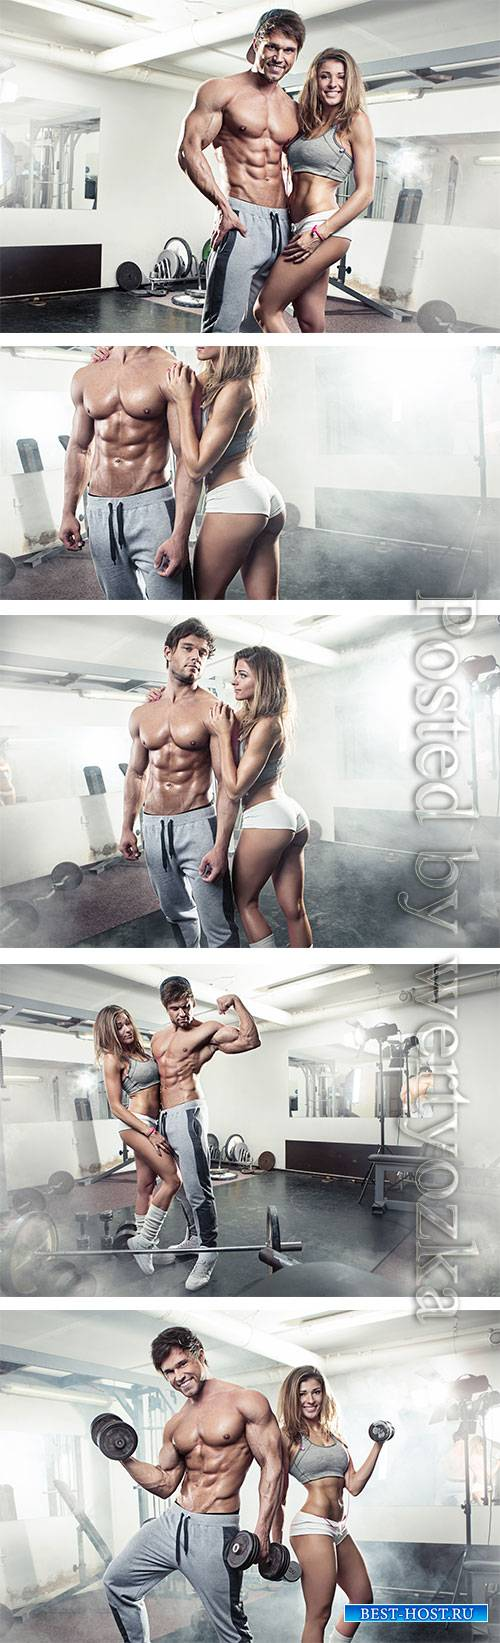 Girl and man in the gym